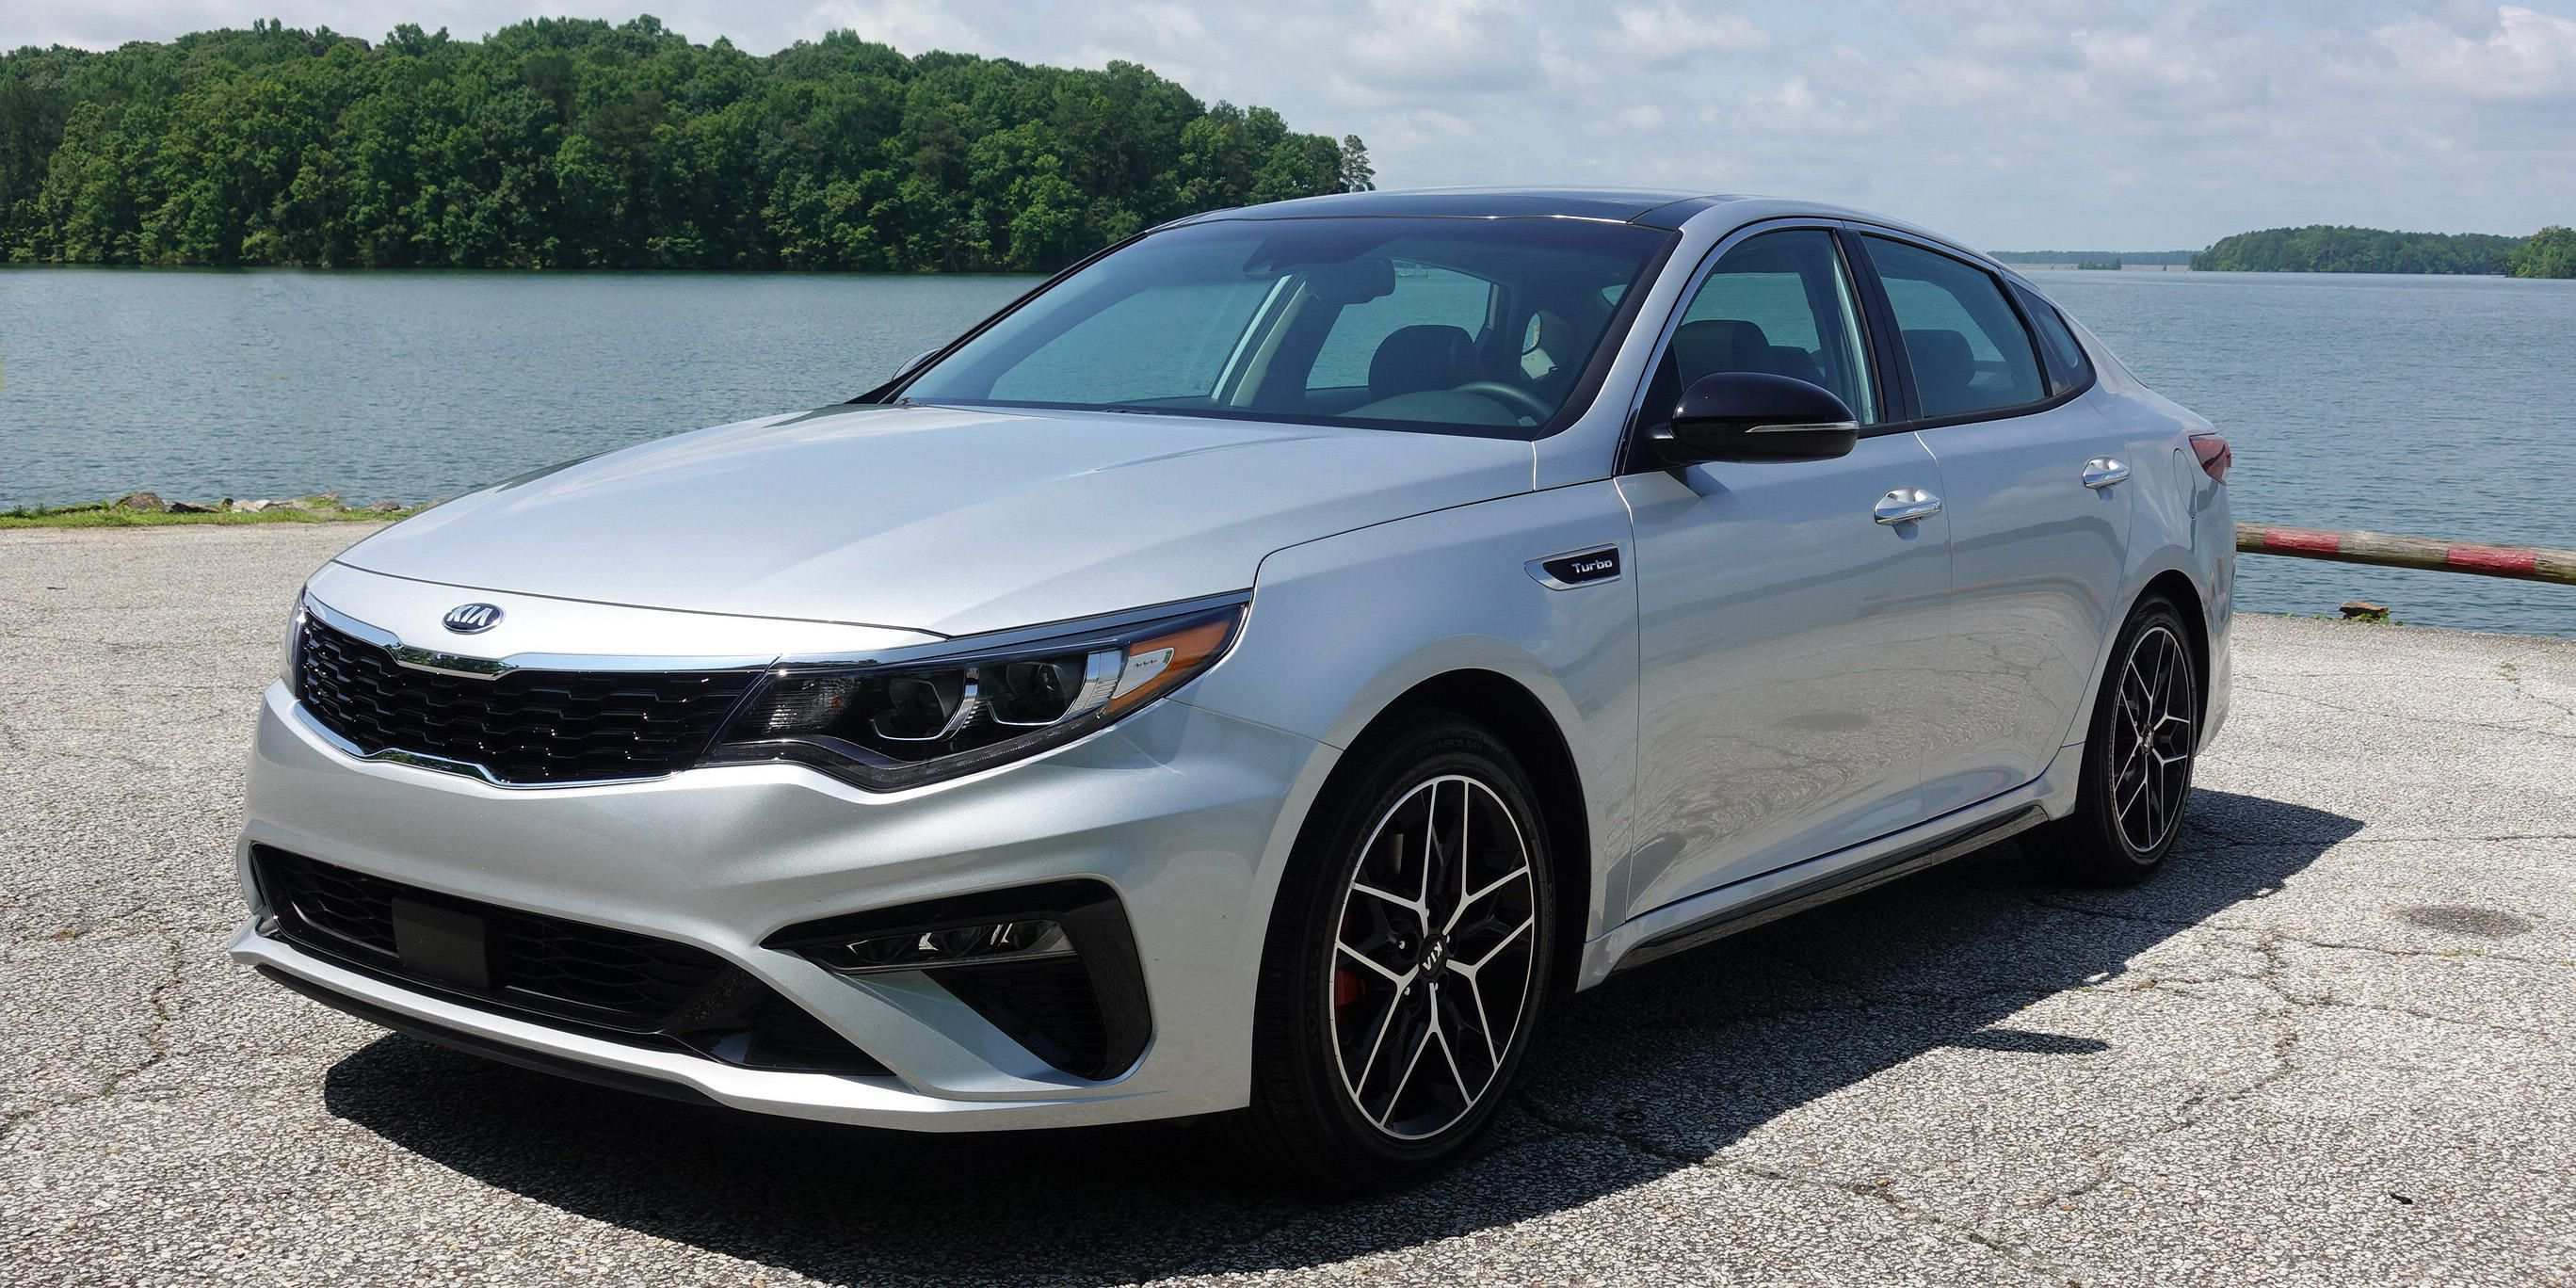 38 All New 2019 Kia OptimaConcept Release